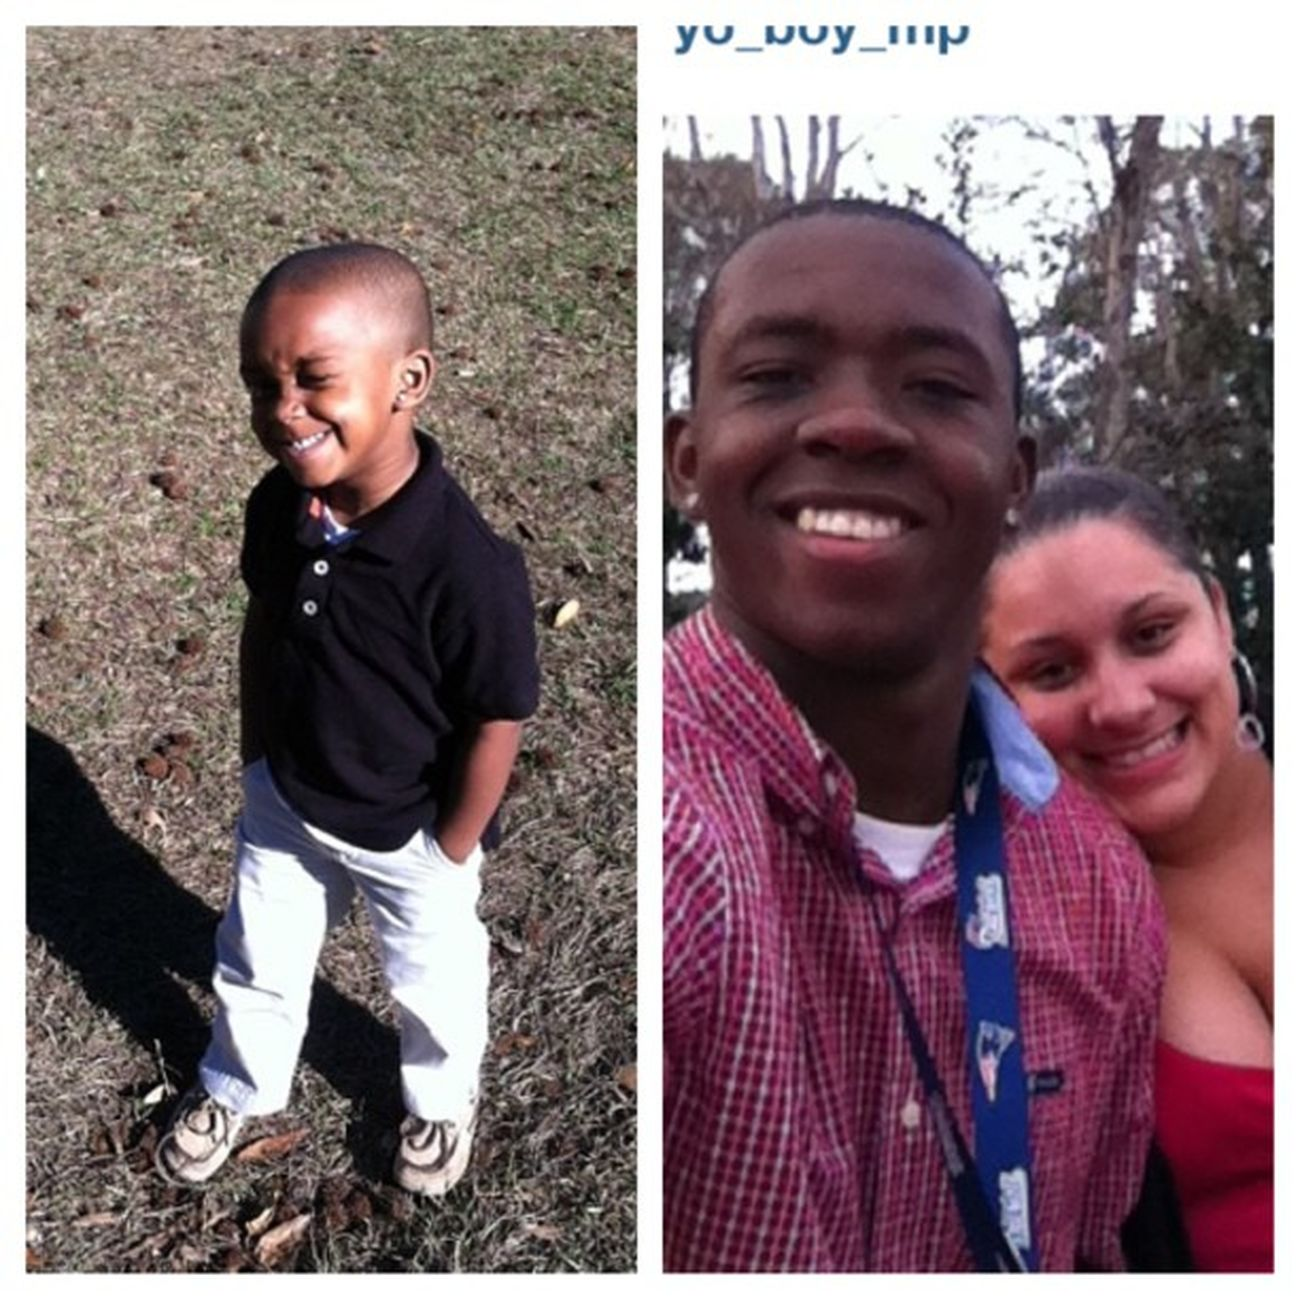 Marchphotochallenge Someoneyoulove These three people are my love bugs for real!! @yo_boy_mp now stop pouting! Lol